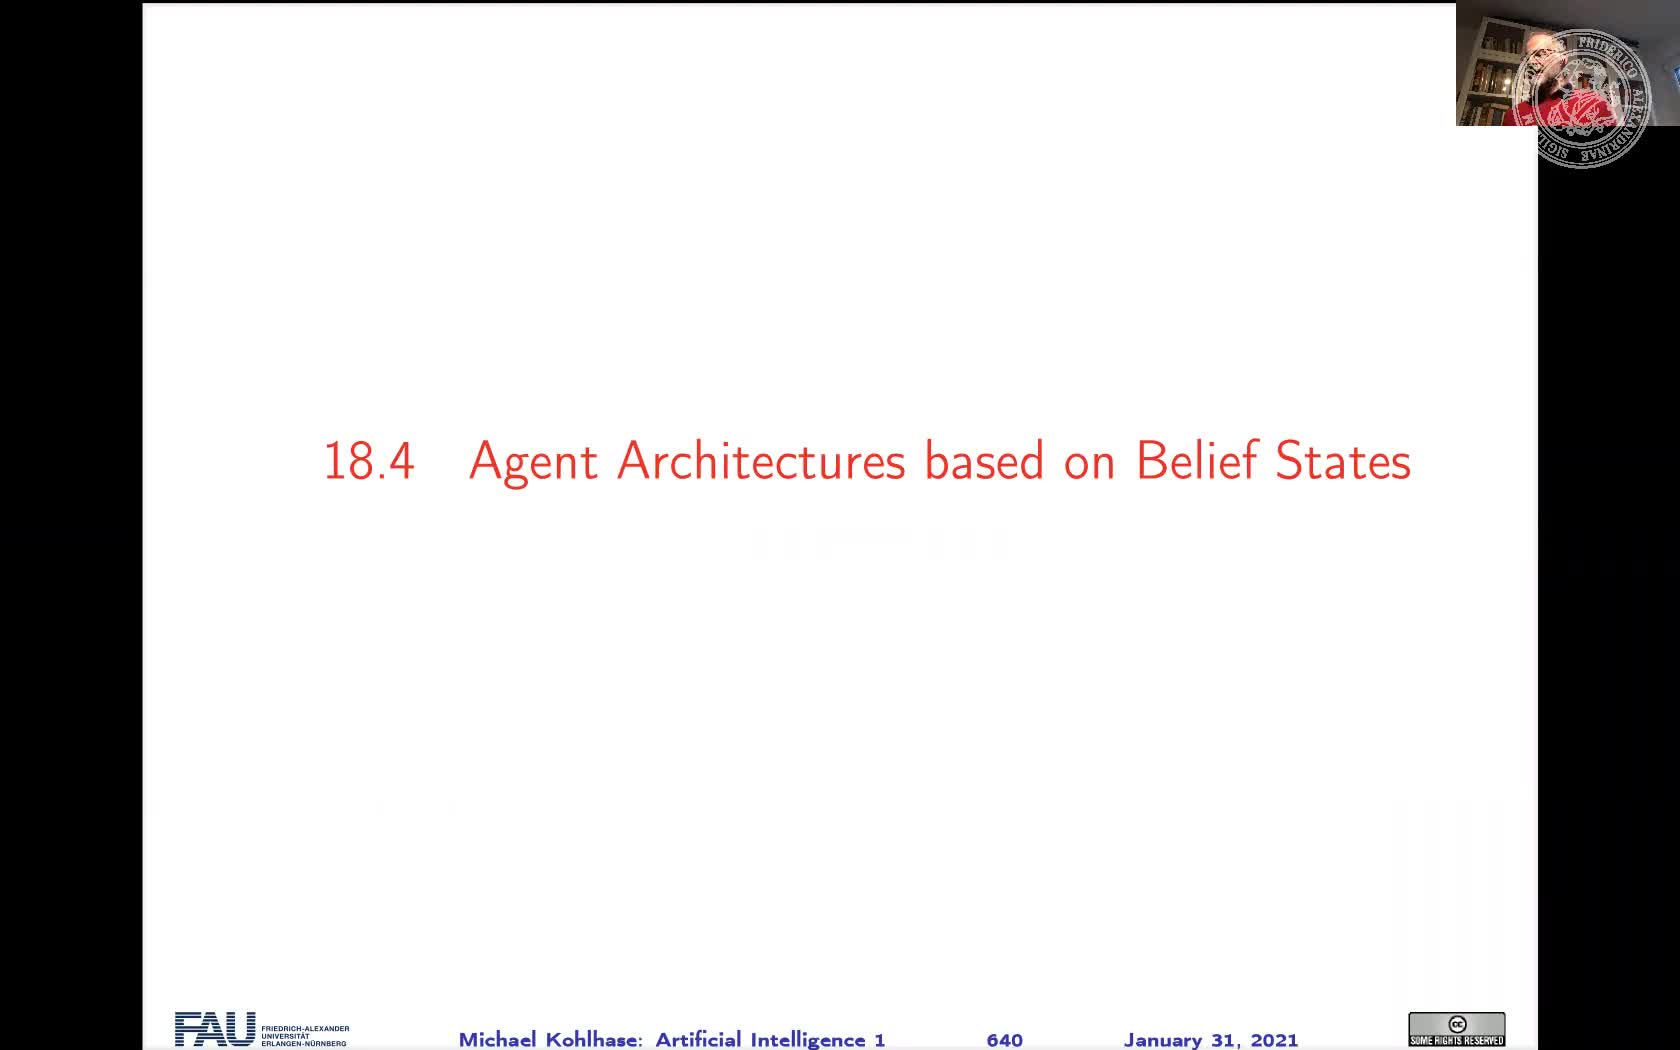 Agent Architectures based on Belief States preview image